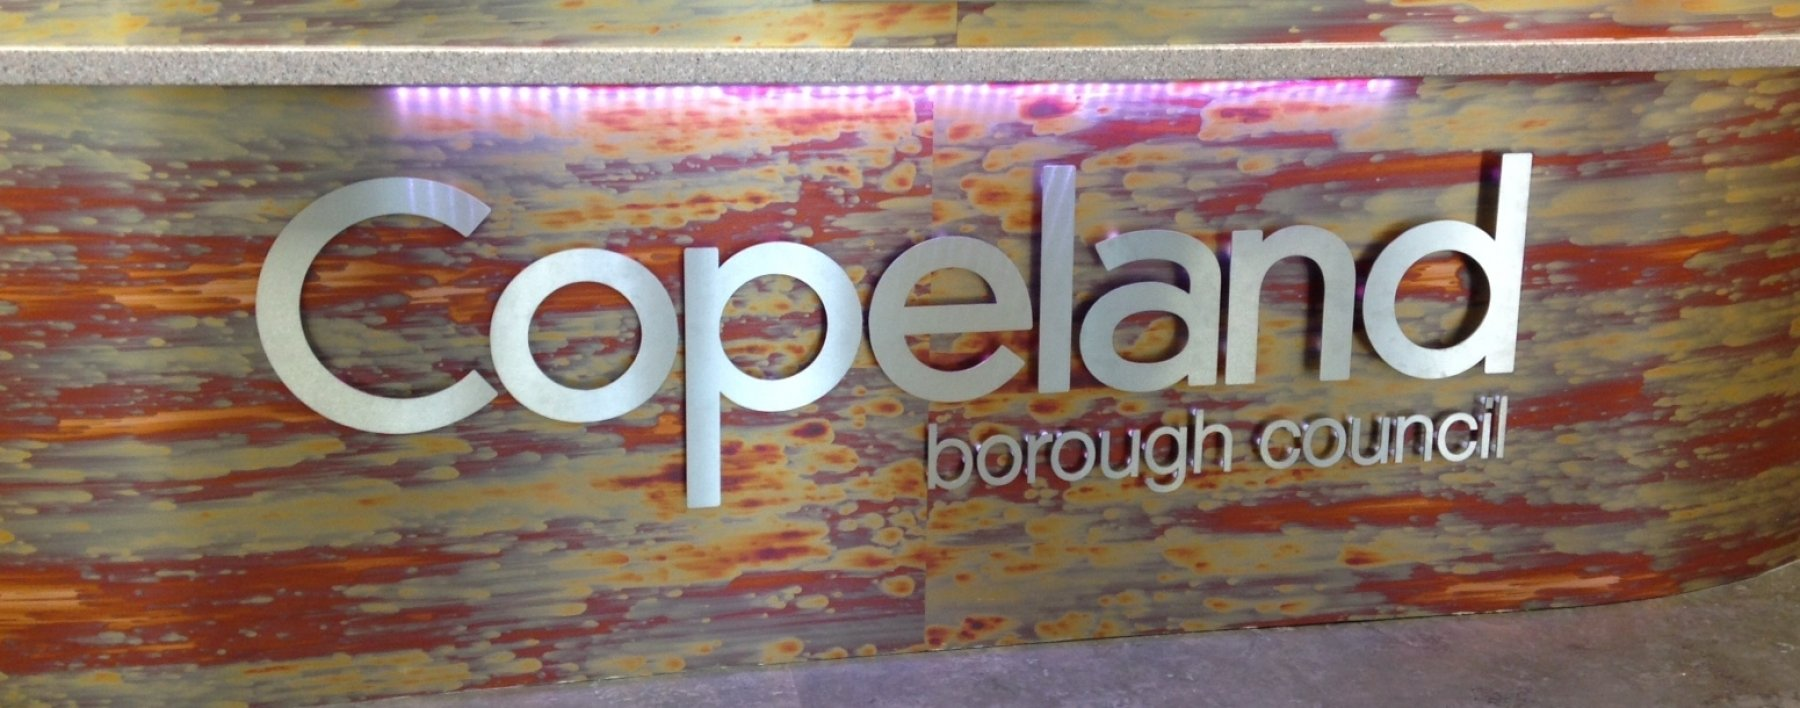 Copeland Council signage by Ast Signs